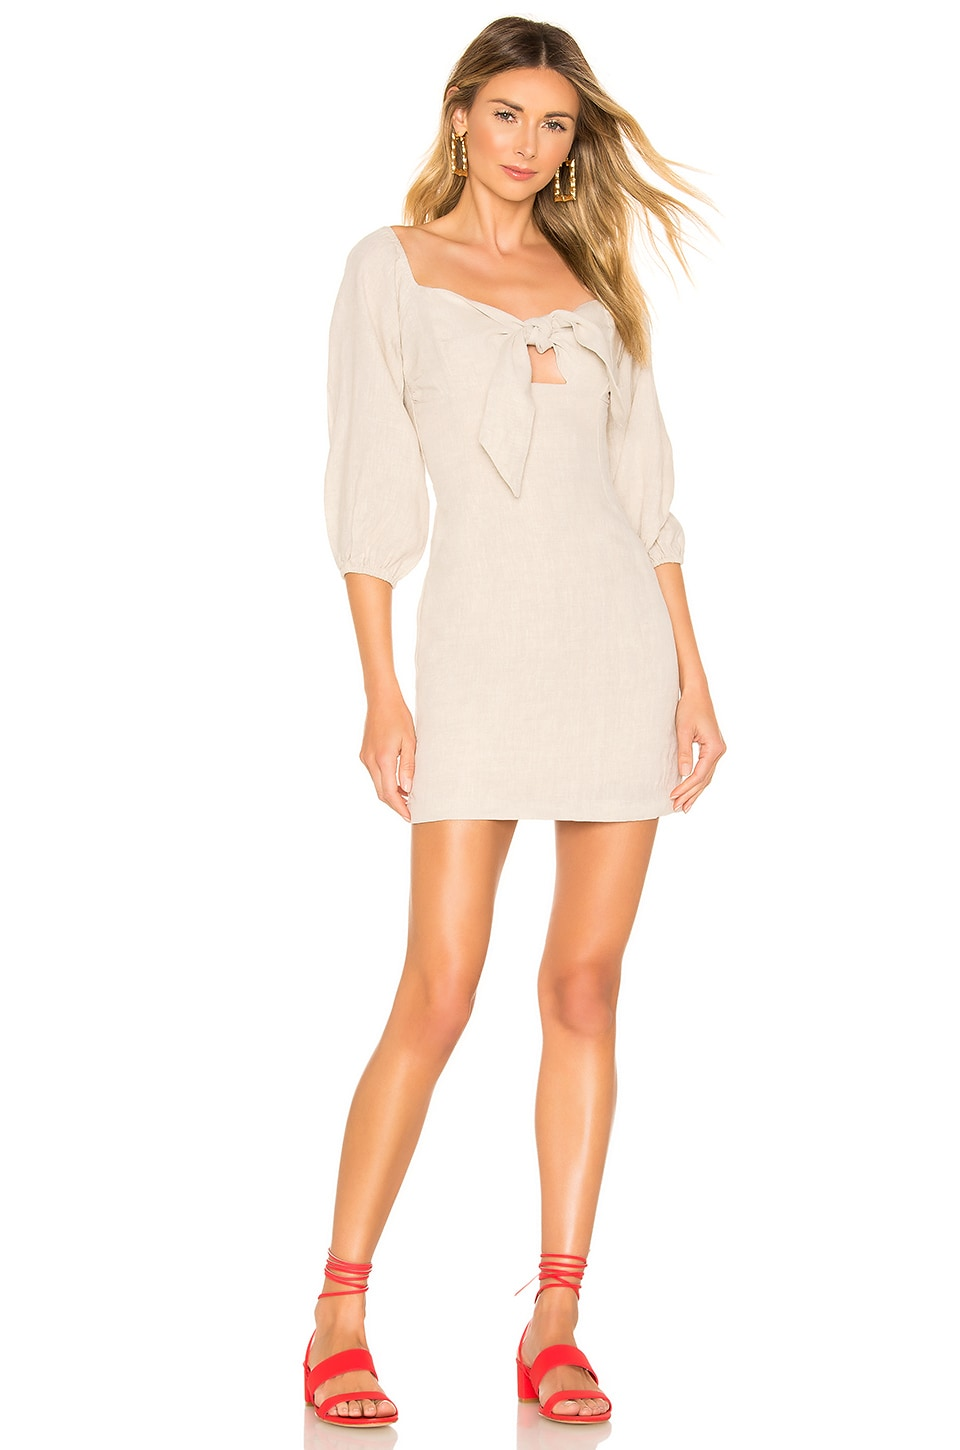 Suboo Wanderer Tie Front Mini Dress in Natural